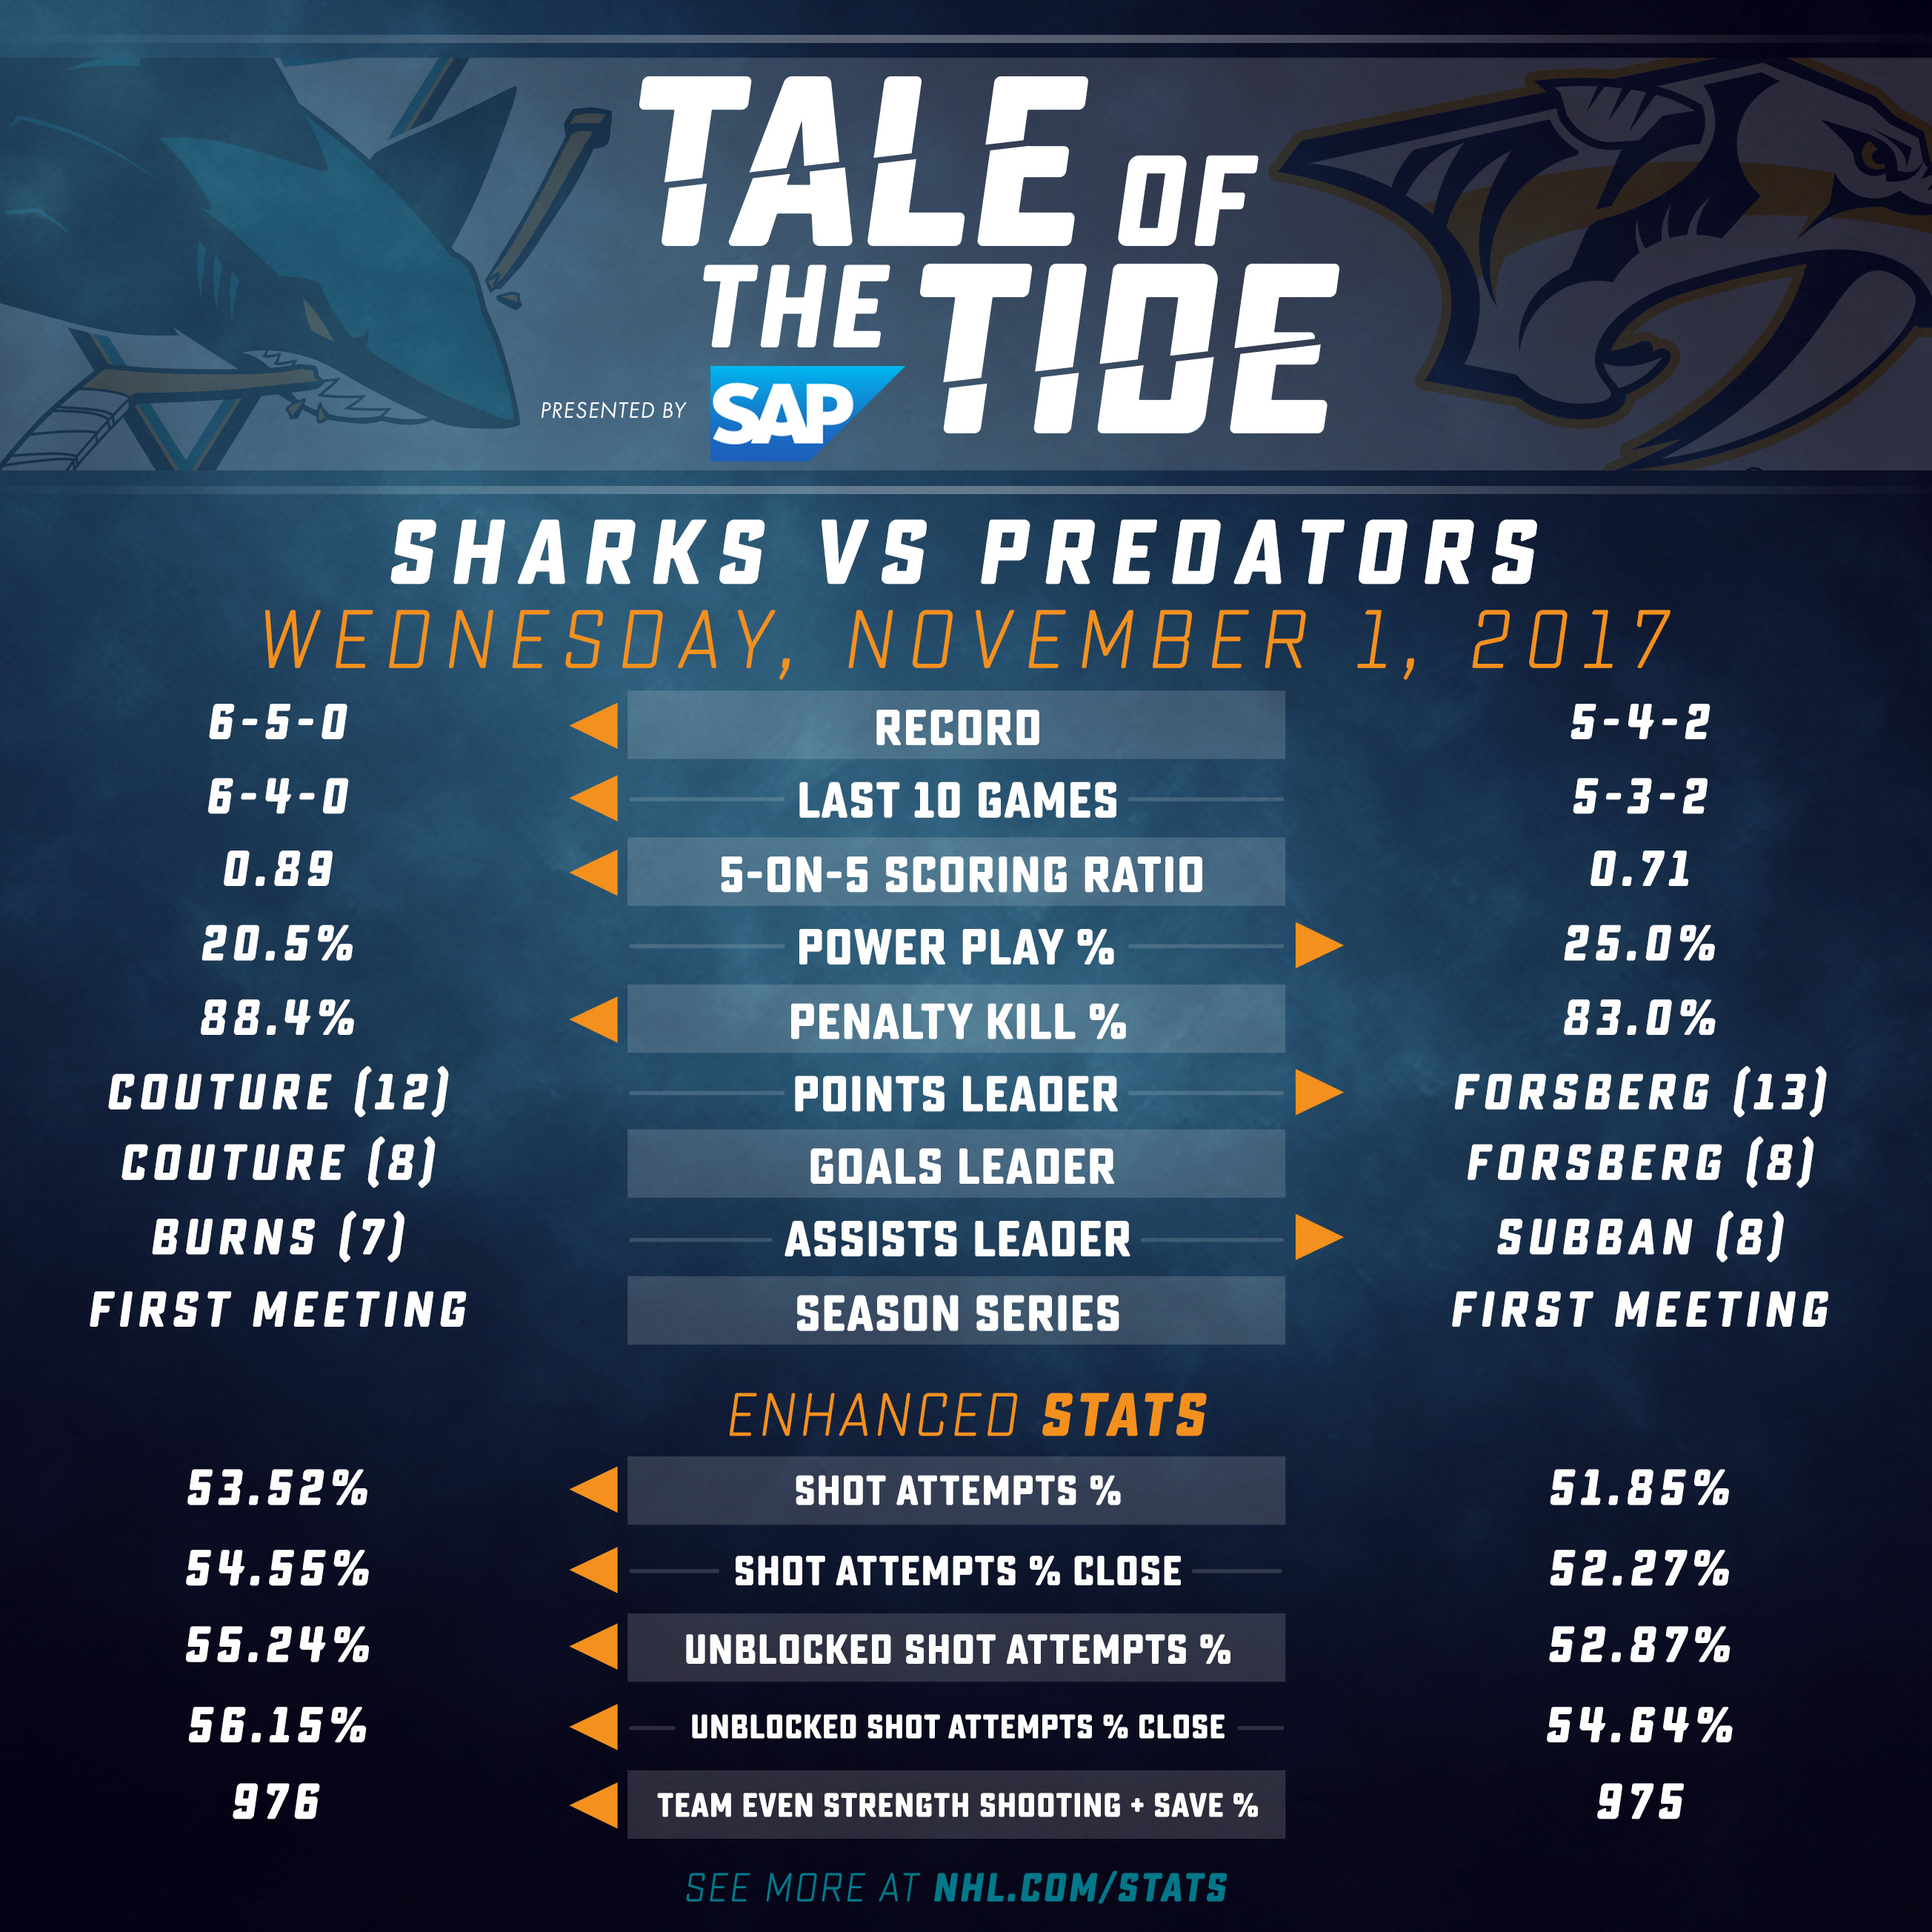 Tale of the Tide